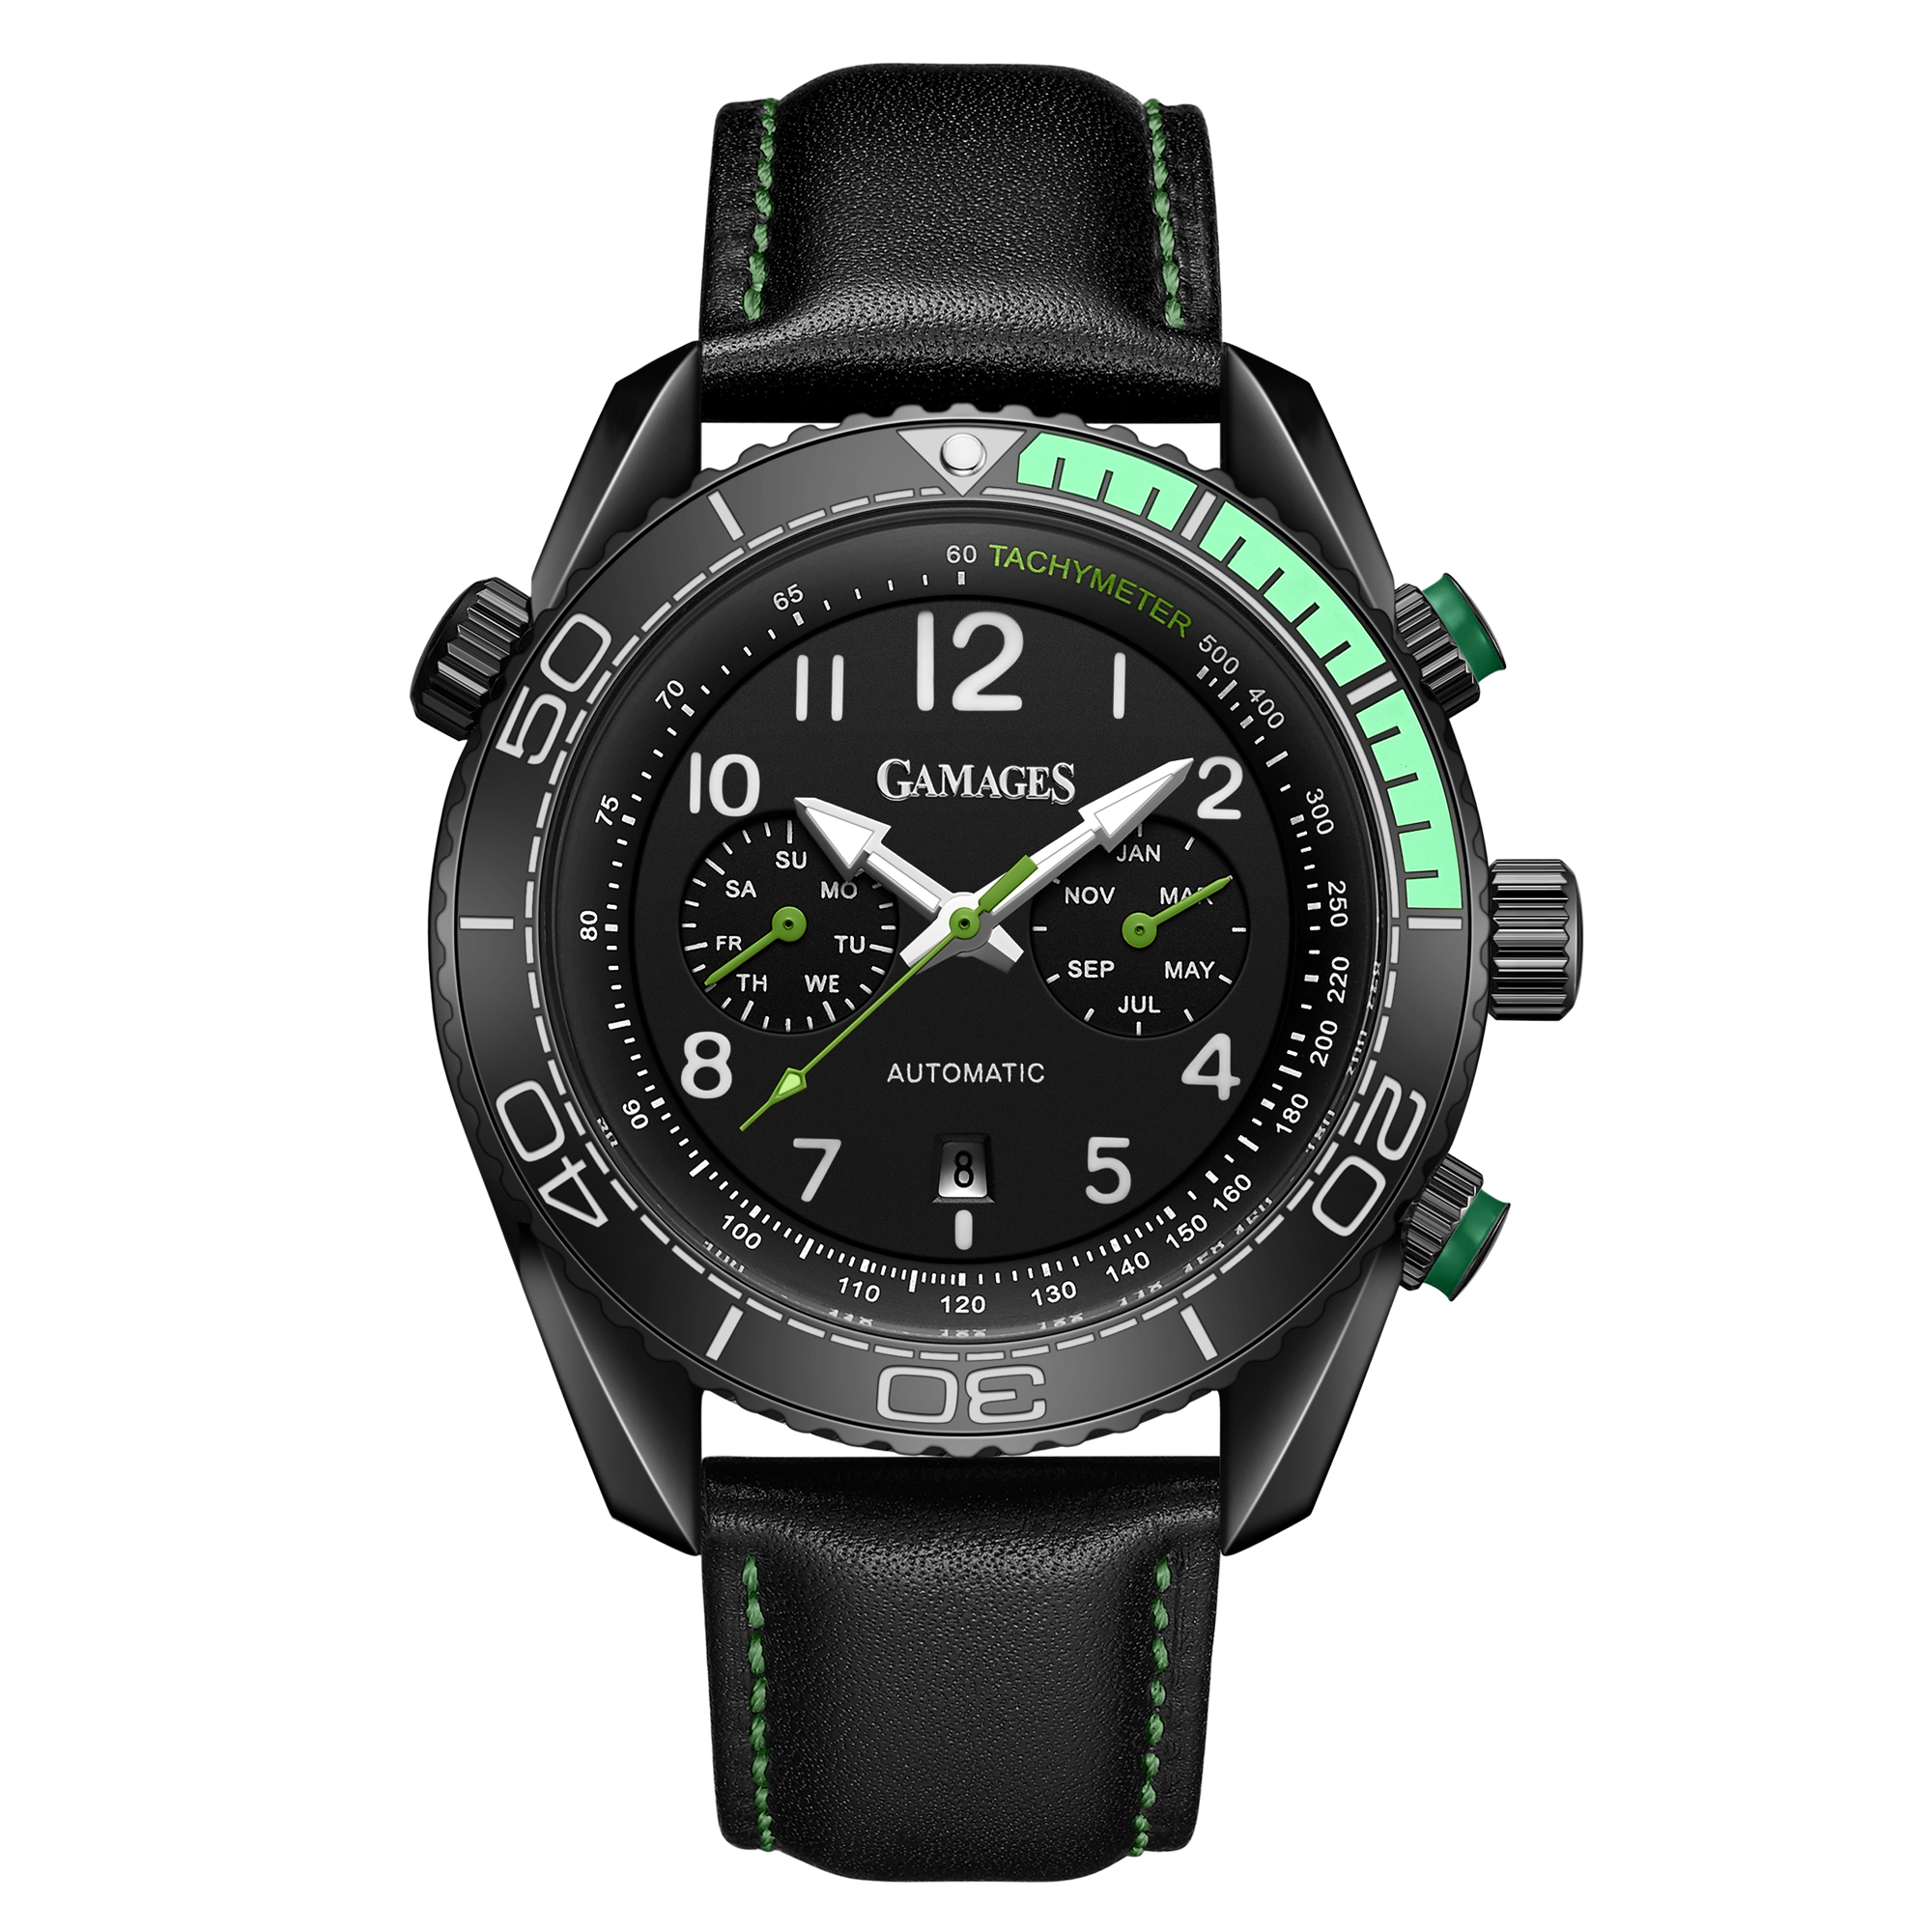 Limited Edition Hand Assembled GAMAGES Supreme Automatic Green – 5 Year Warranty & Free Delivery - Image 3 of 7